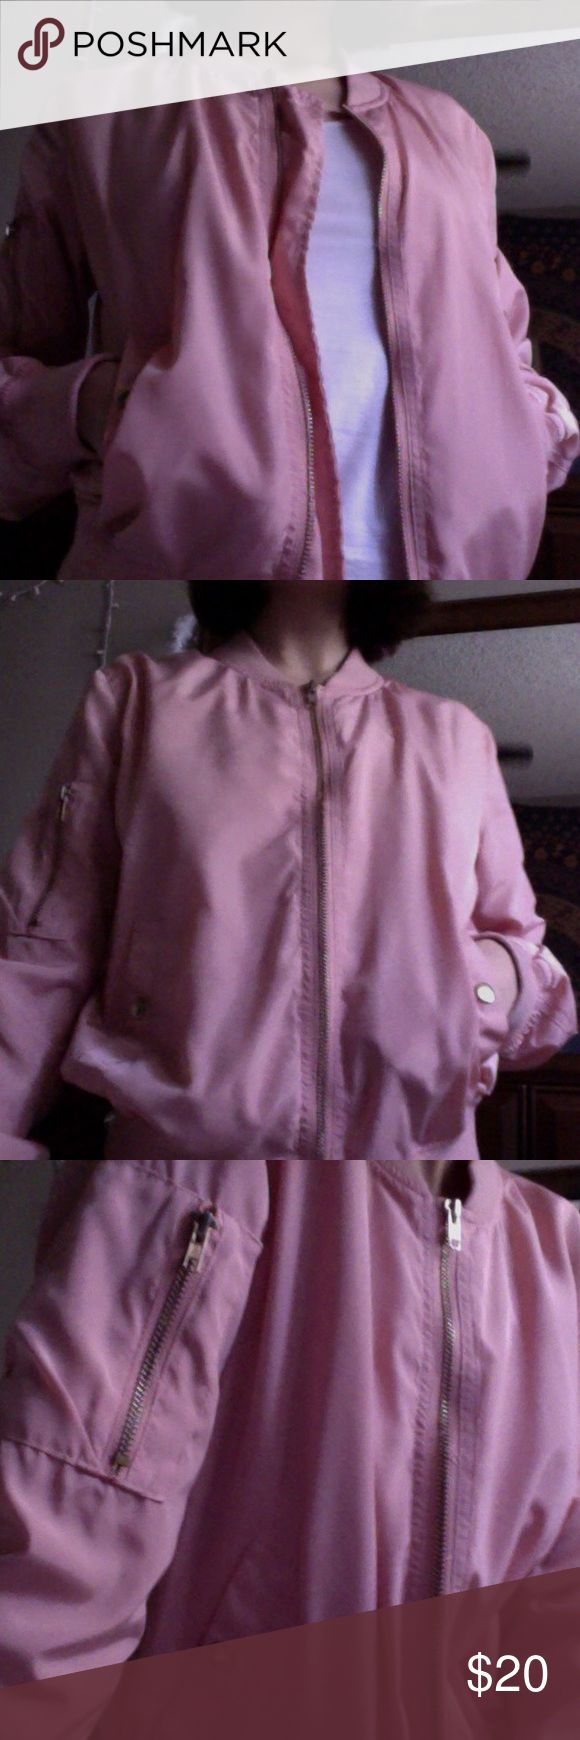 Really cute pink bomber jacket! Really cute pink bomber jacket with cool zip on the sleeve :) Bought this for $30 but it doesnt fit me as oversized as I'd want it to! Size small modeled on XS #tumblr #pink #bomberjacket #aesthetic #cheap #budget #fashion Sweaters